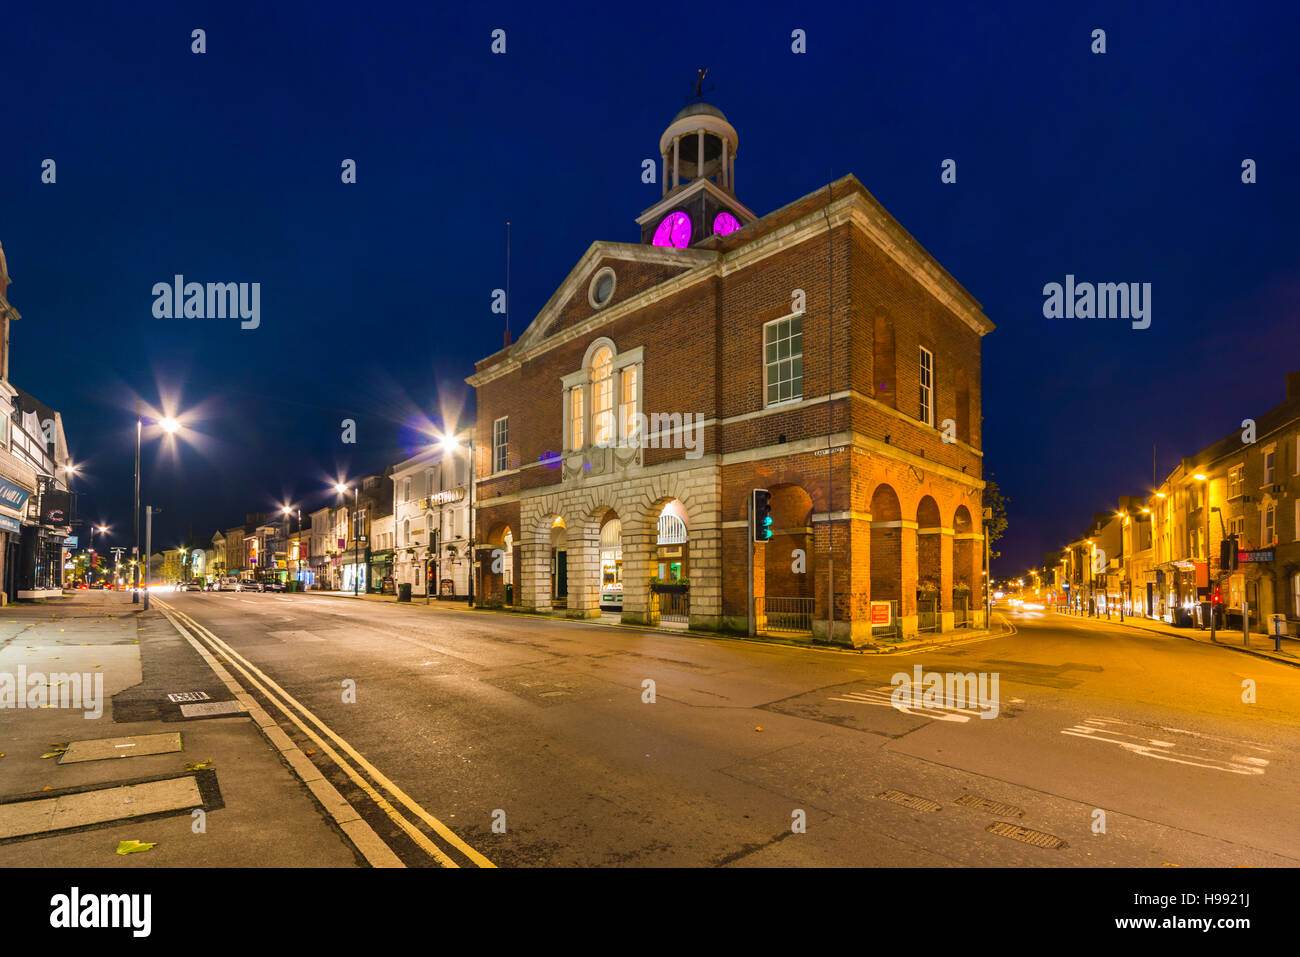 Bridport, Dorset, UK.  20th November 2016.  UK Weather.  A view at dusk of the Town Hall in Bridport in Dorset which - Stock Image